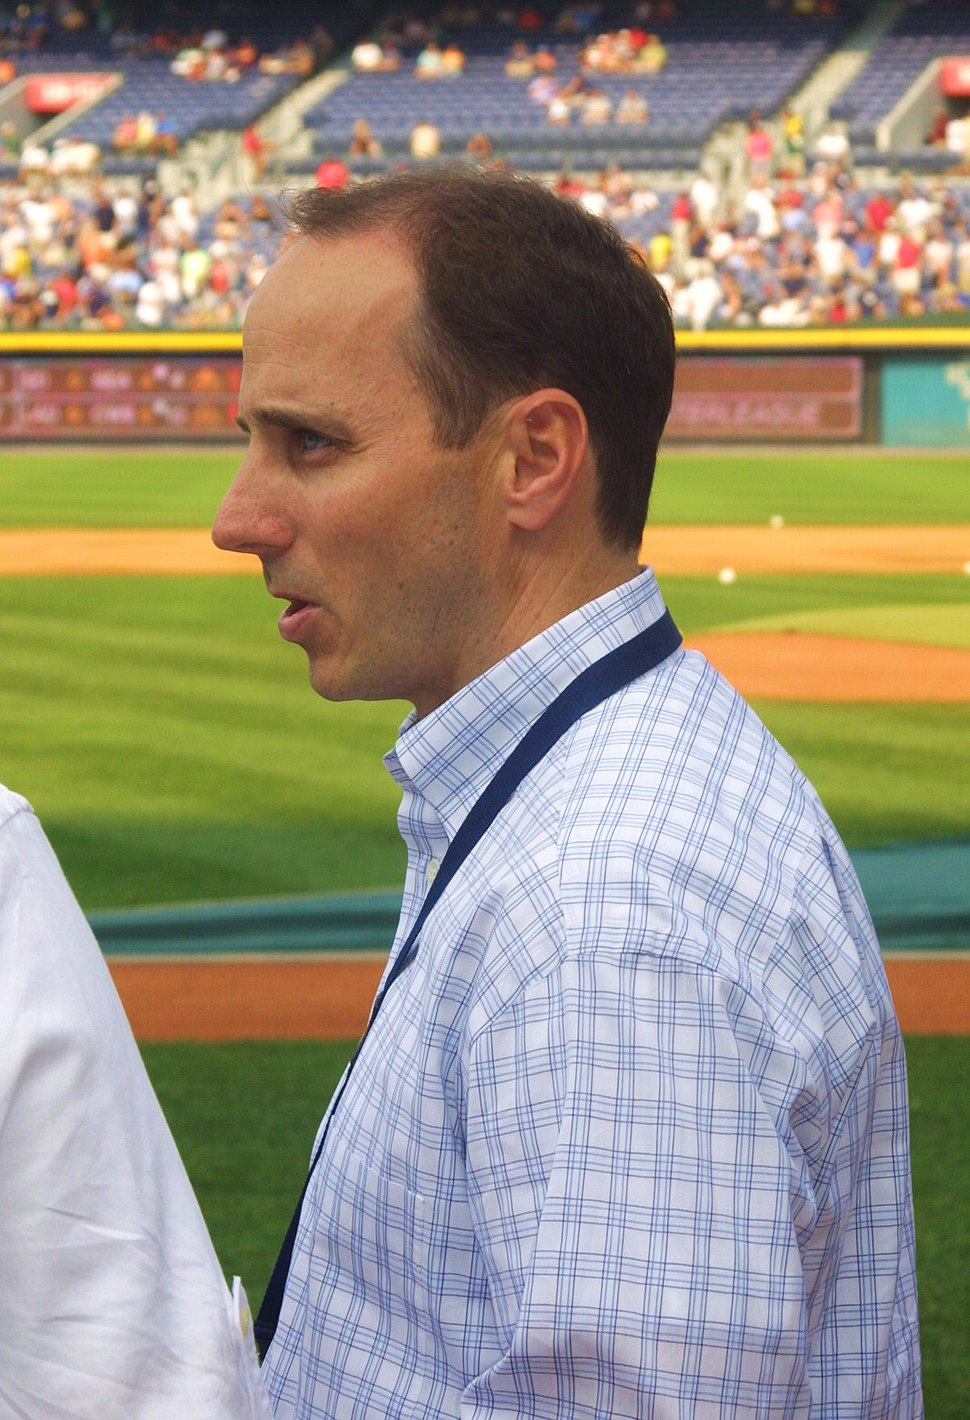 Brian Cashman on June 25, 2009